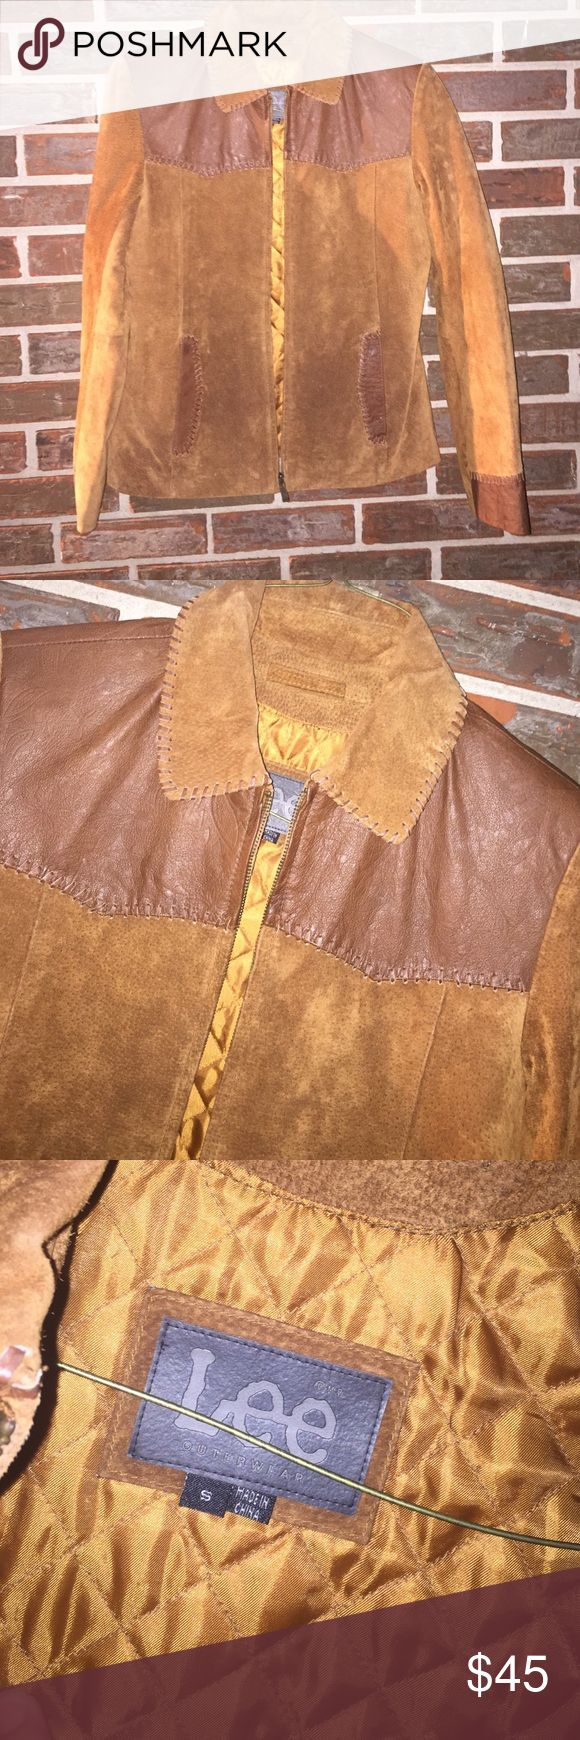 """Vintage leather Lee jacket Women's size small, but fits medium perfectly. Vintage genuine leather Lee jacket. Lined & warm. Pit-pit is 19"""". Zips up front with front pockets. Really good condition! Lee Jackets & Coats"""